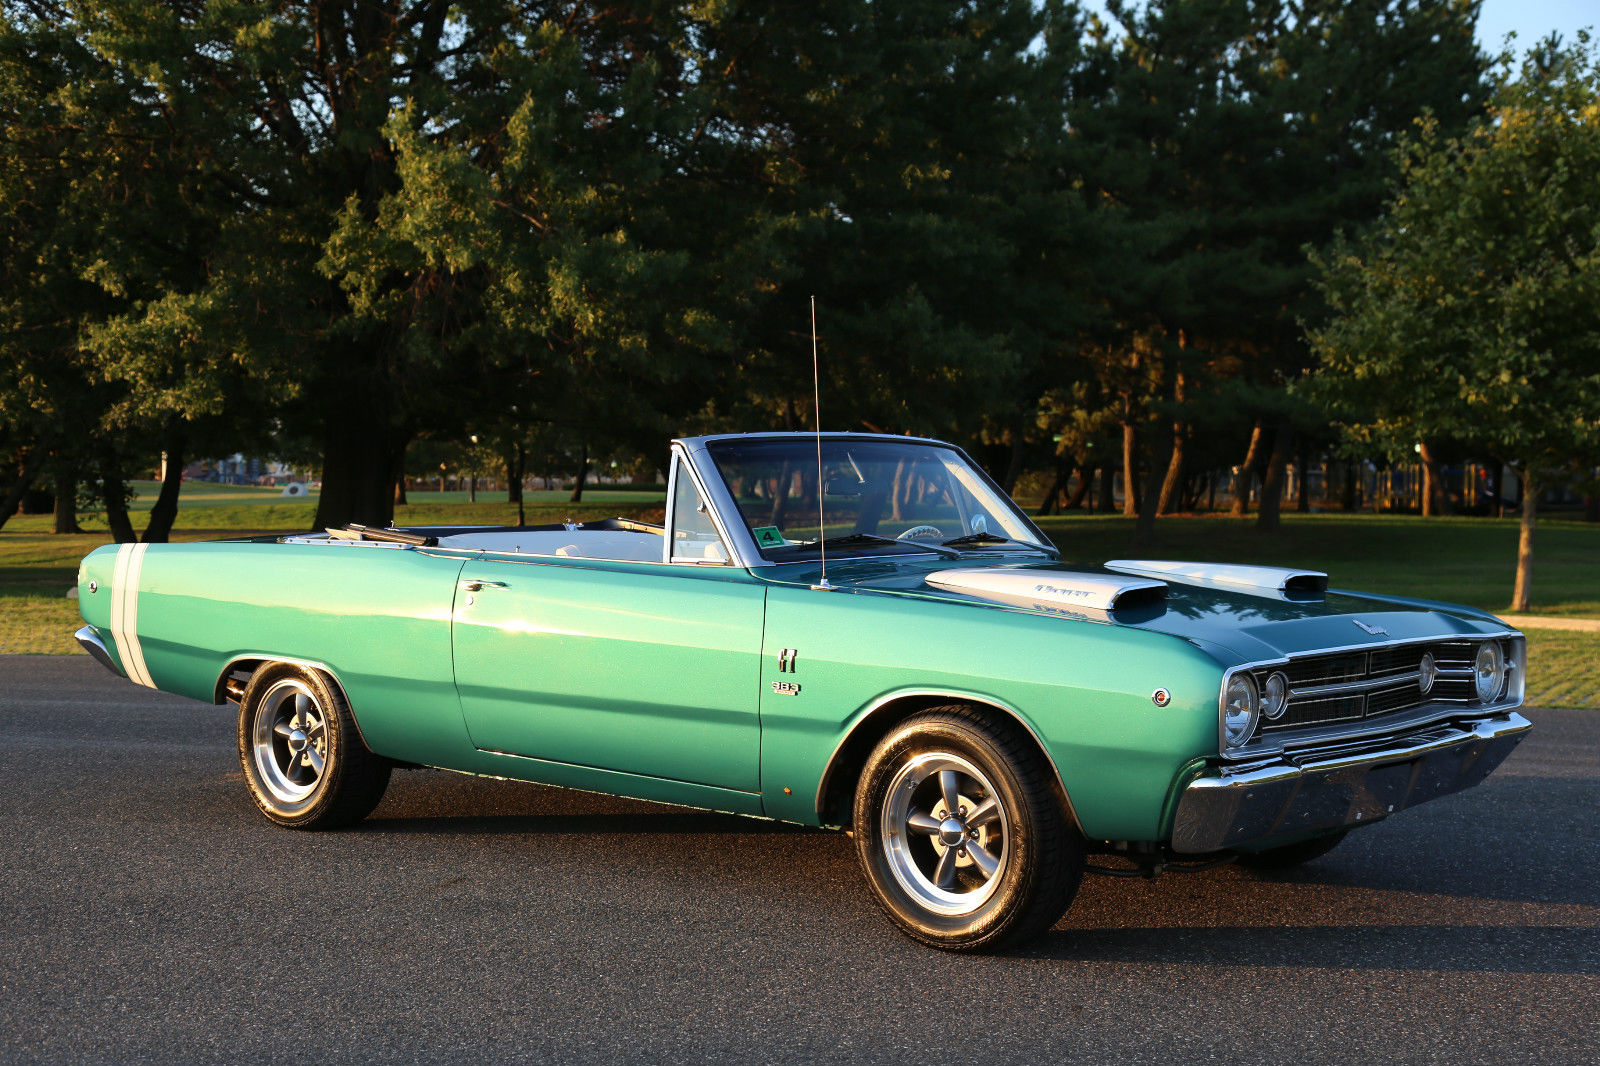 1968 Dodge Dart GT - Project Cars For Sale